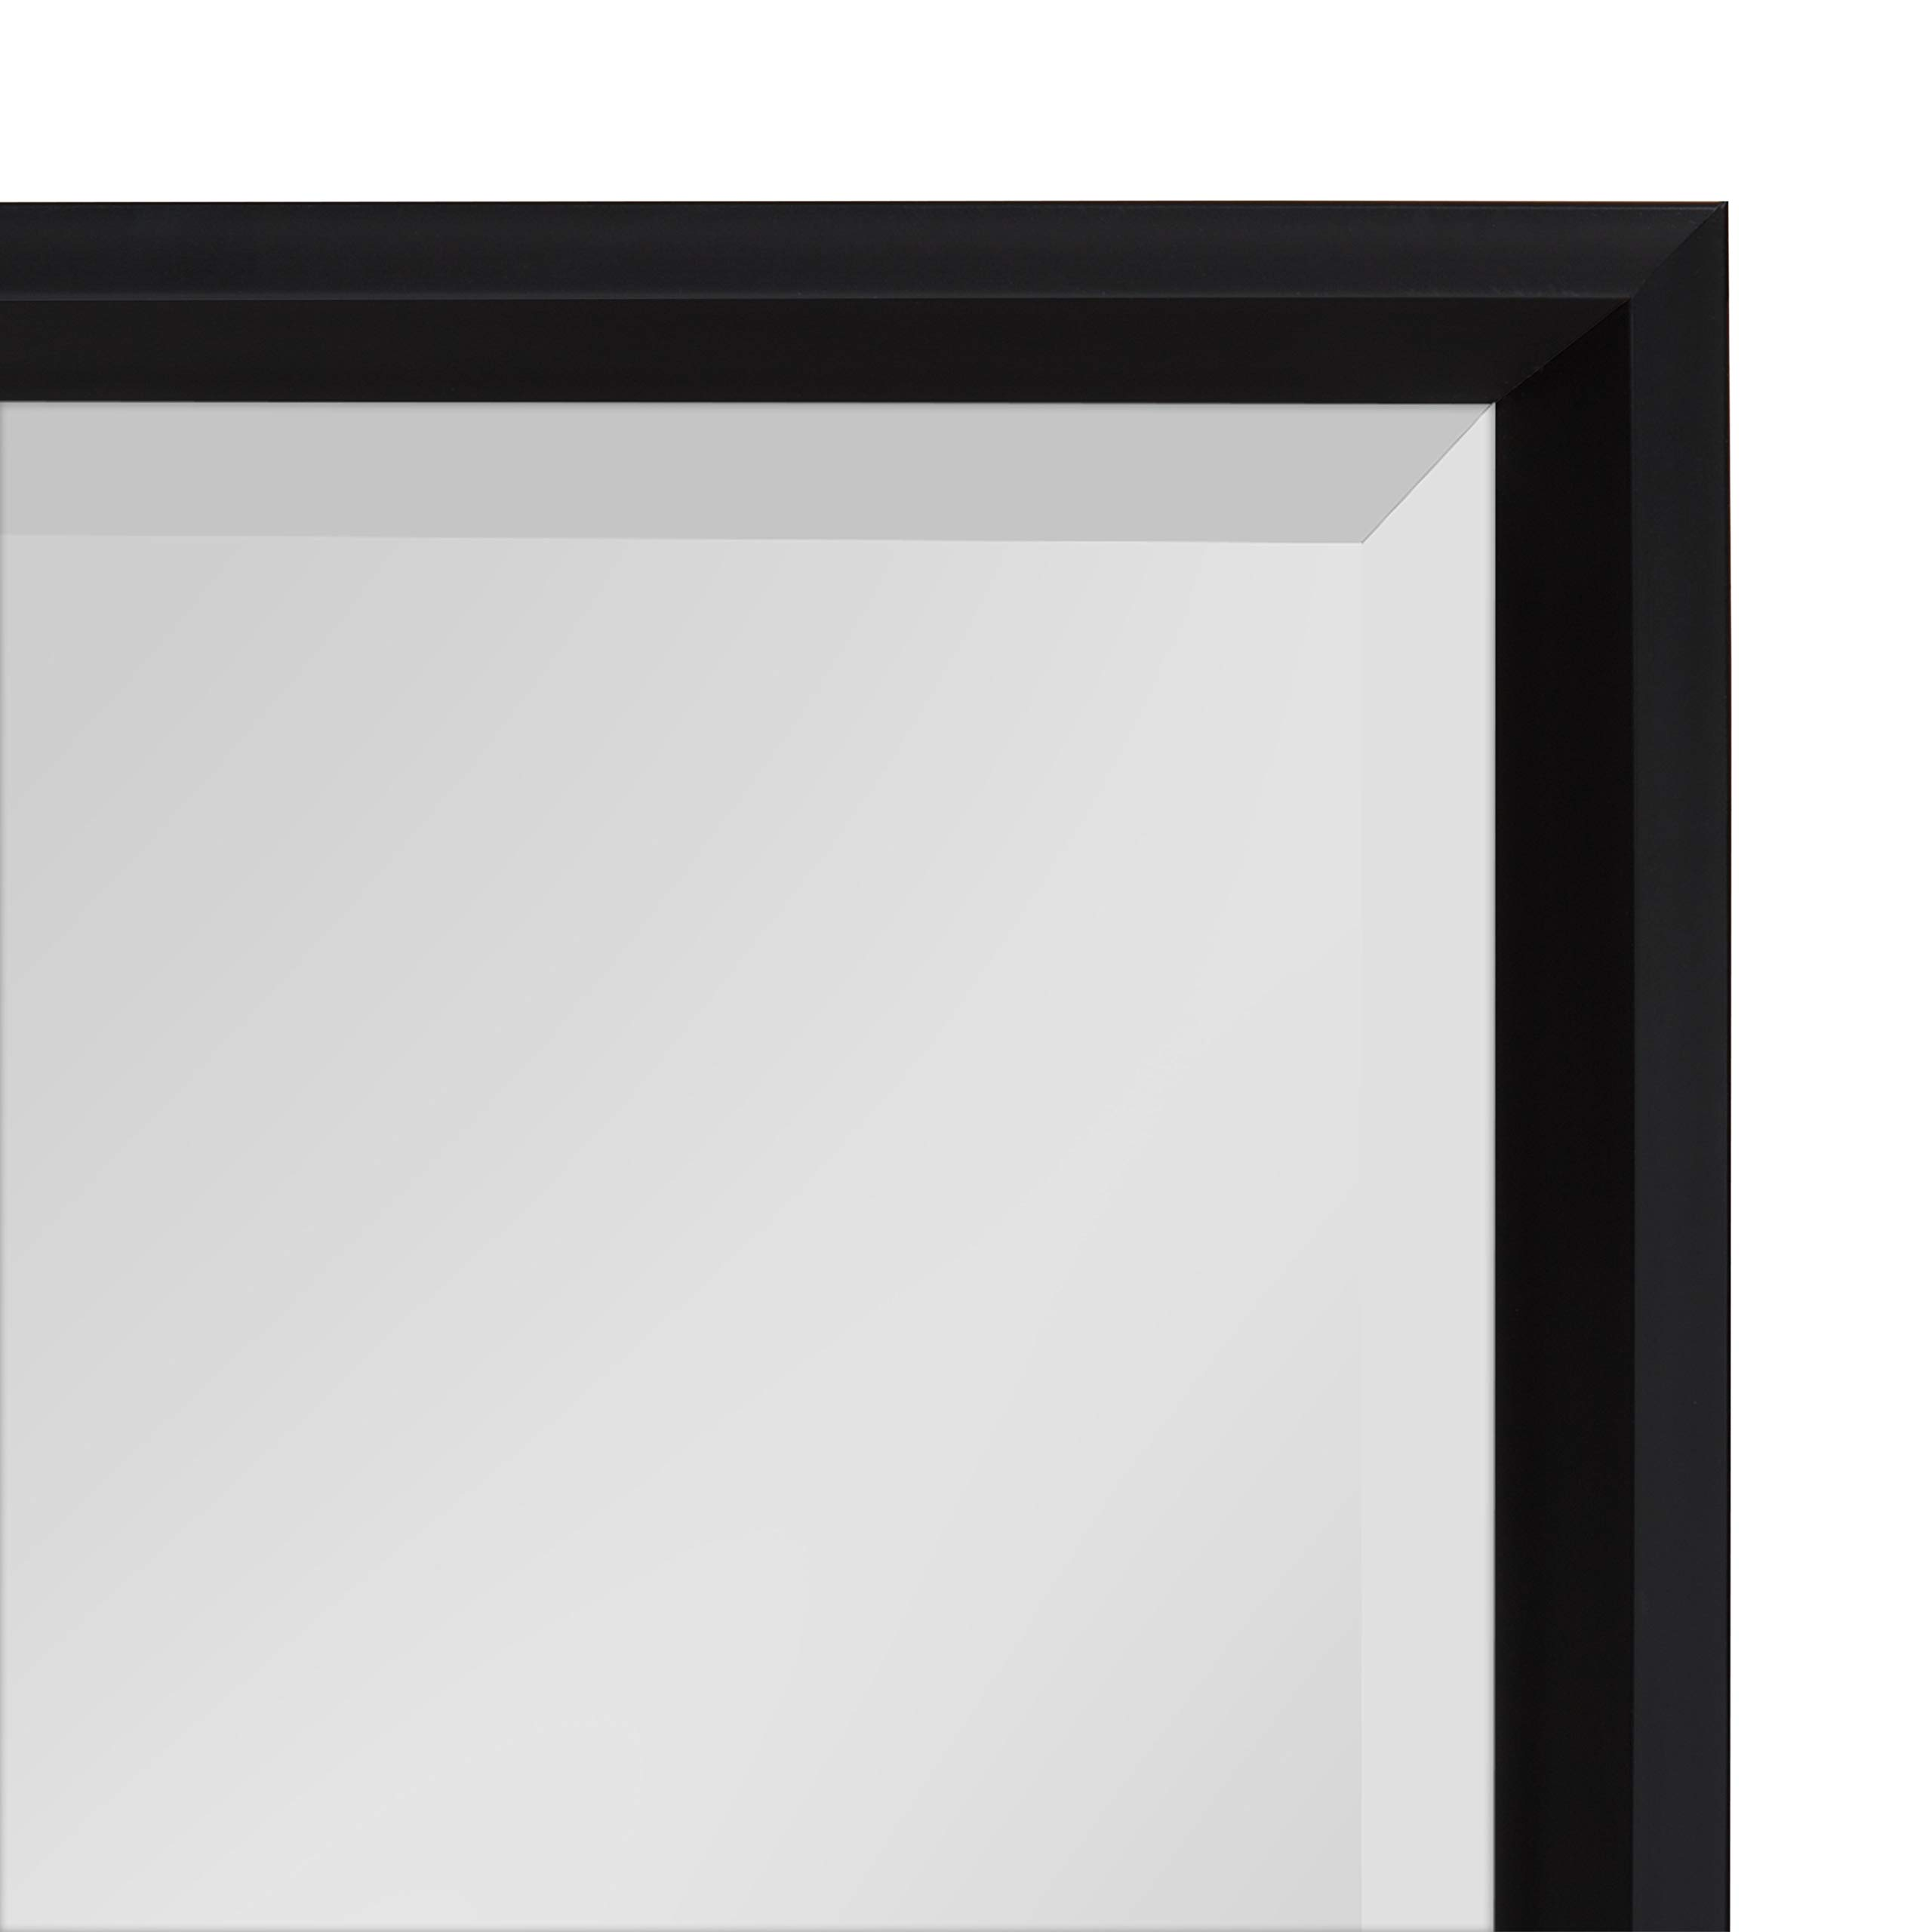 Kate and Laurel Calter Modern Decorative Framed Beveled Wall Mirror, 19.5x25.5 Black by Kate and Laurel (Image #4)